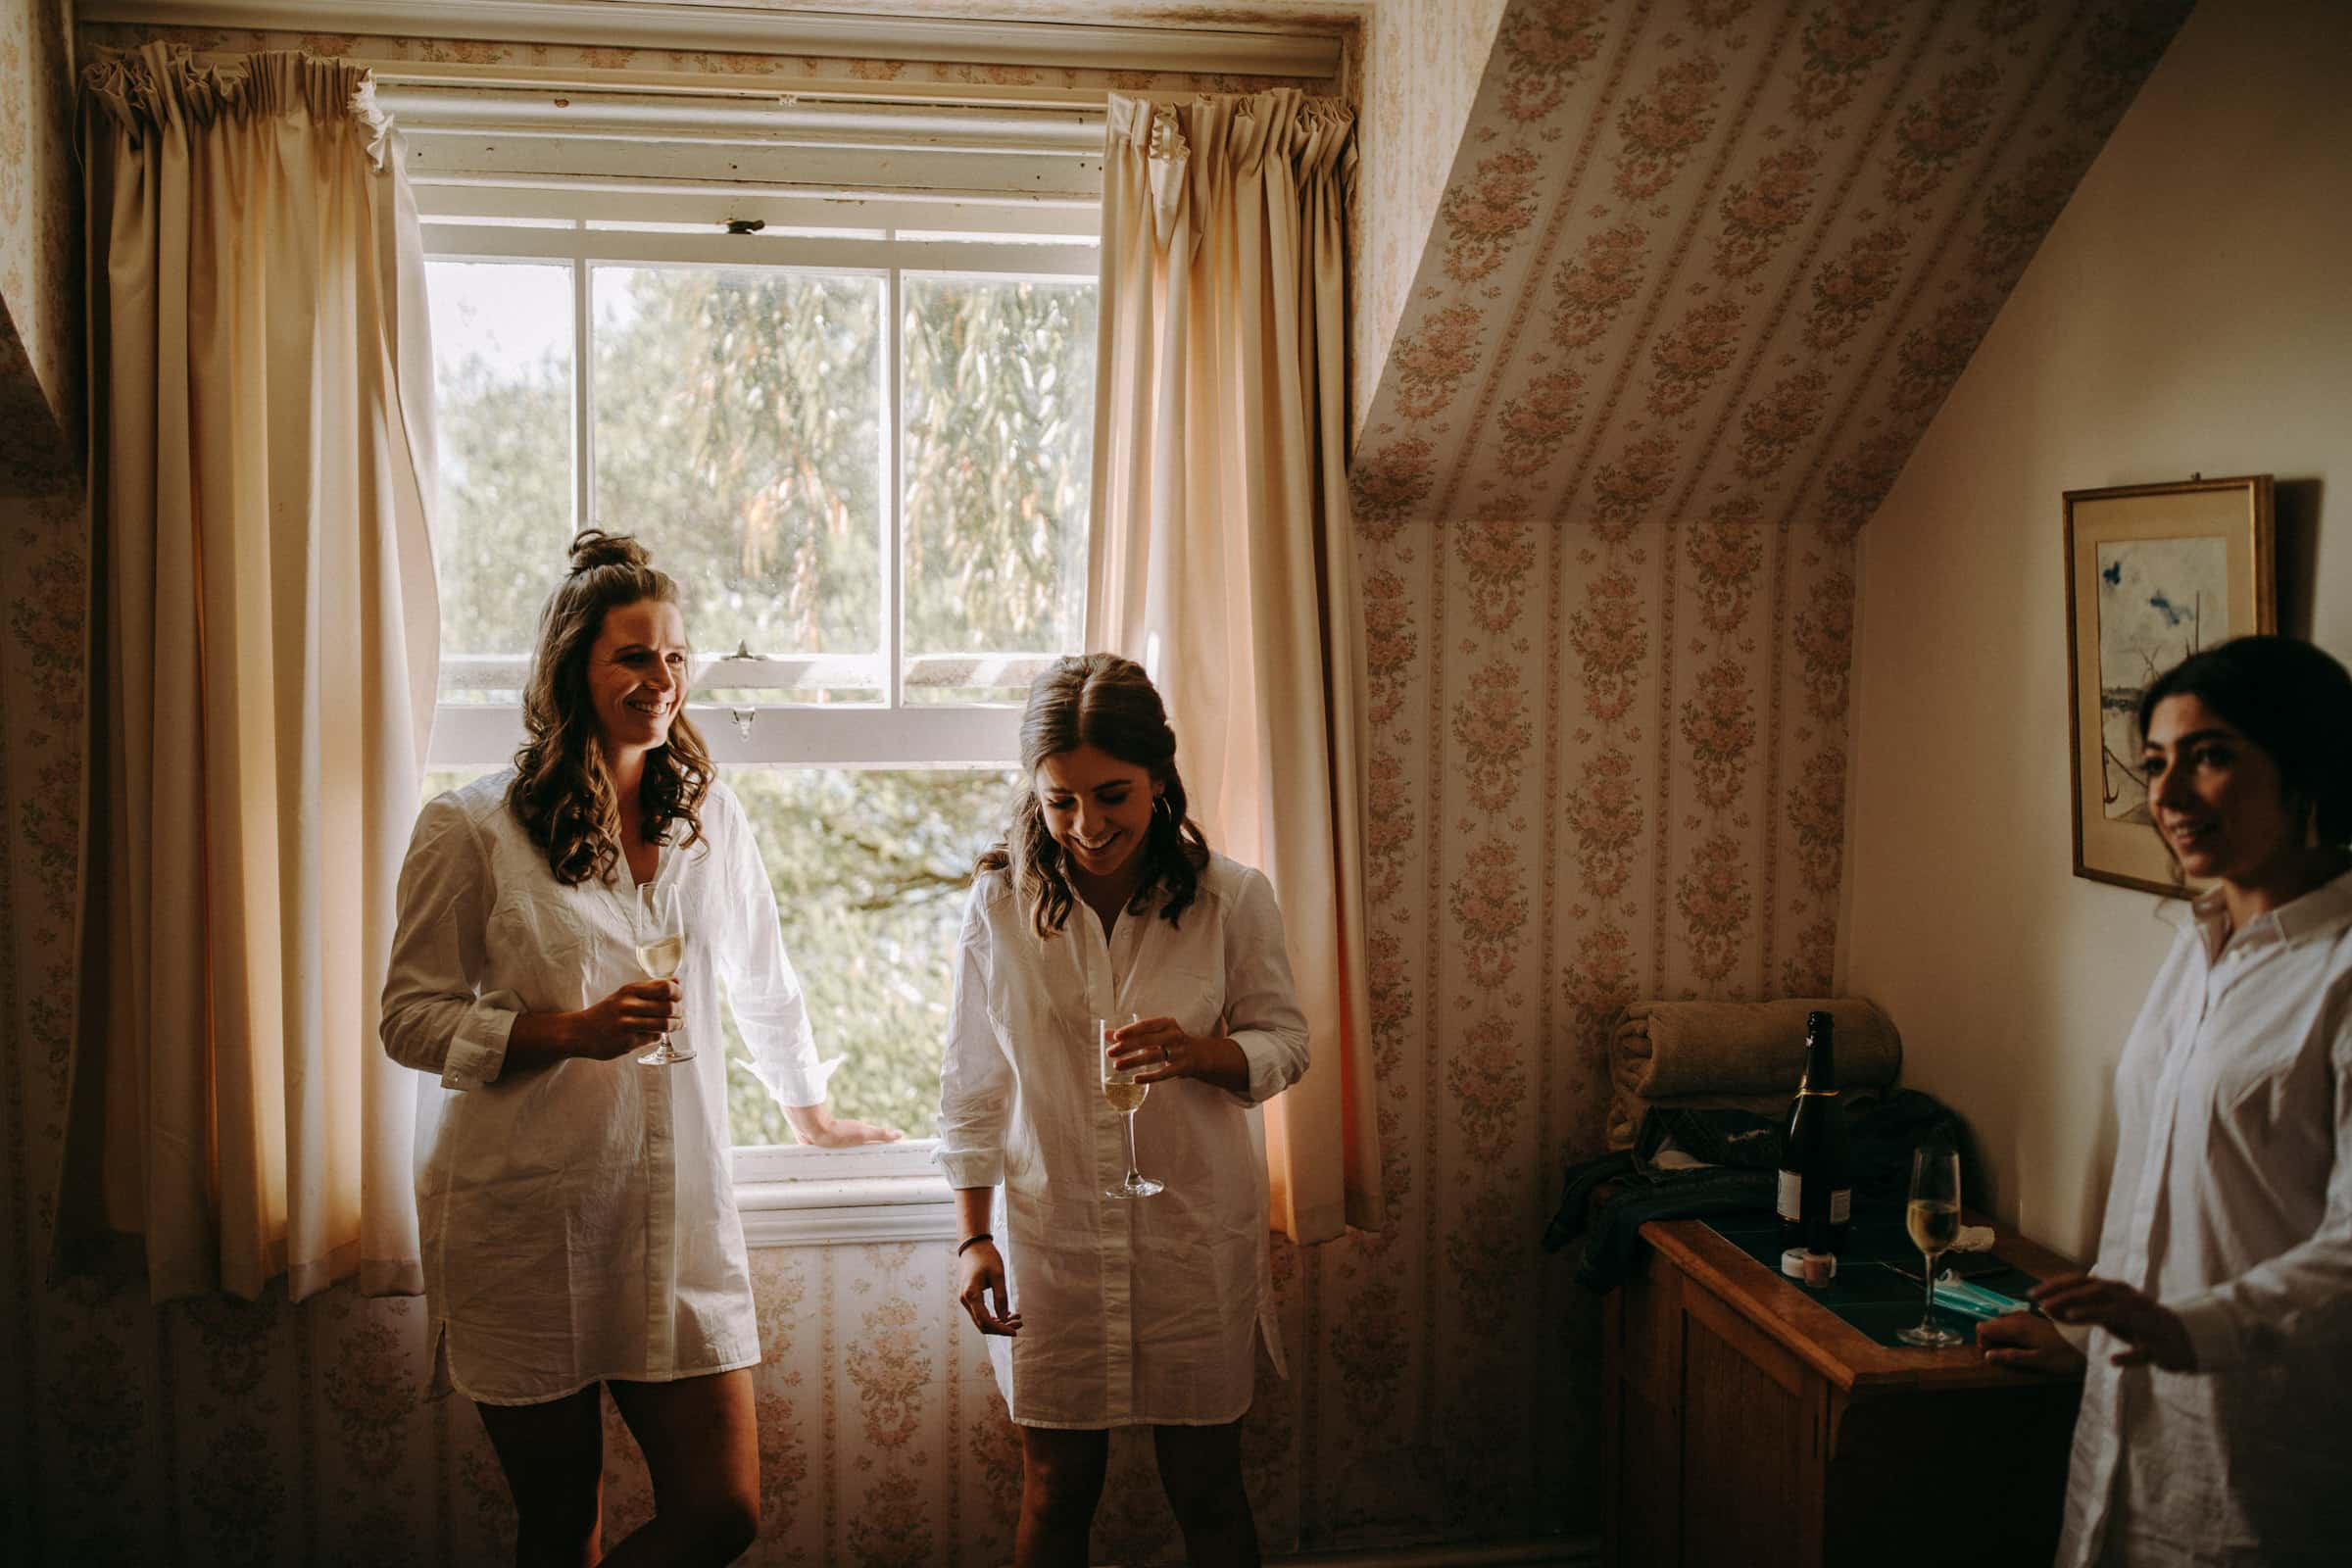 Bridesmaids are drinking champaign and laughing next to an open window.